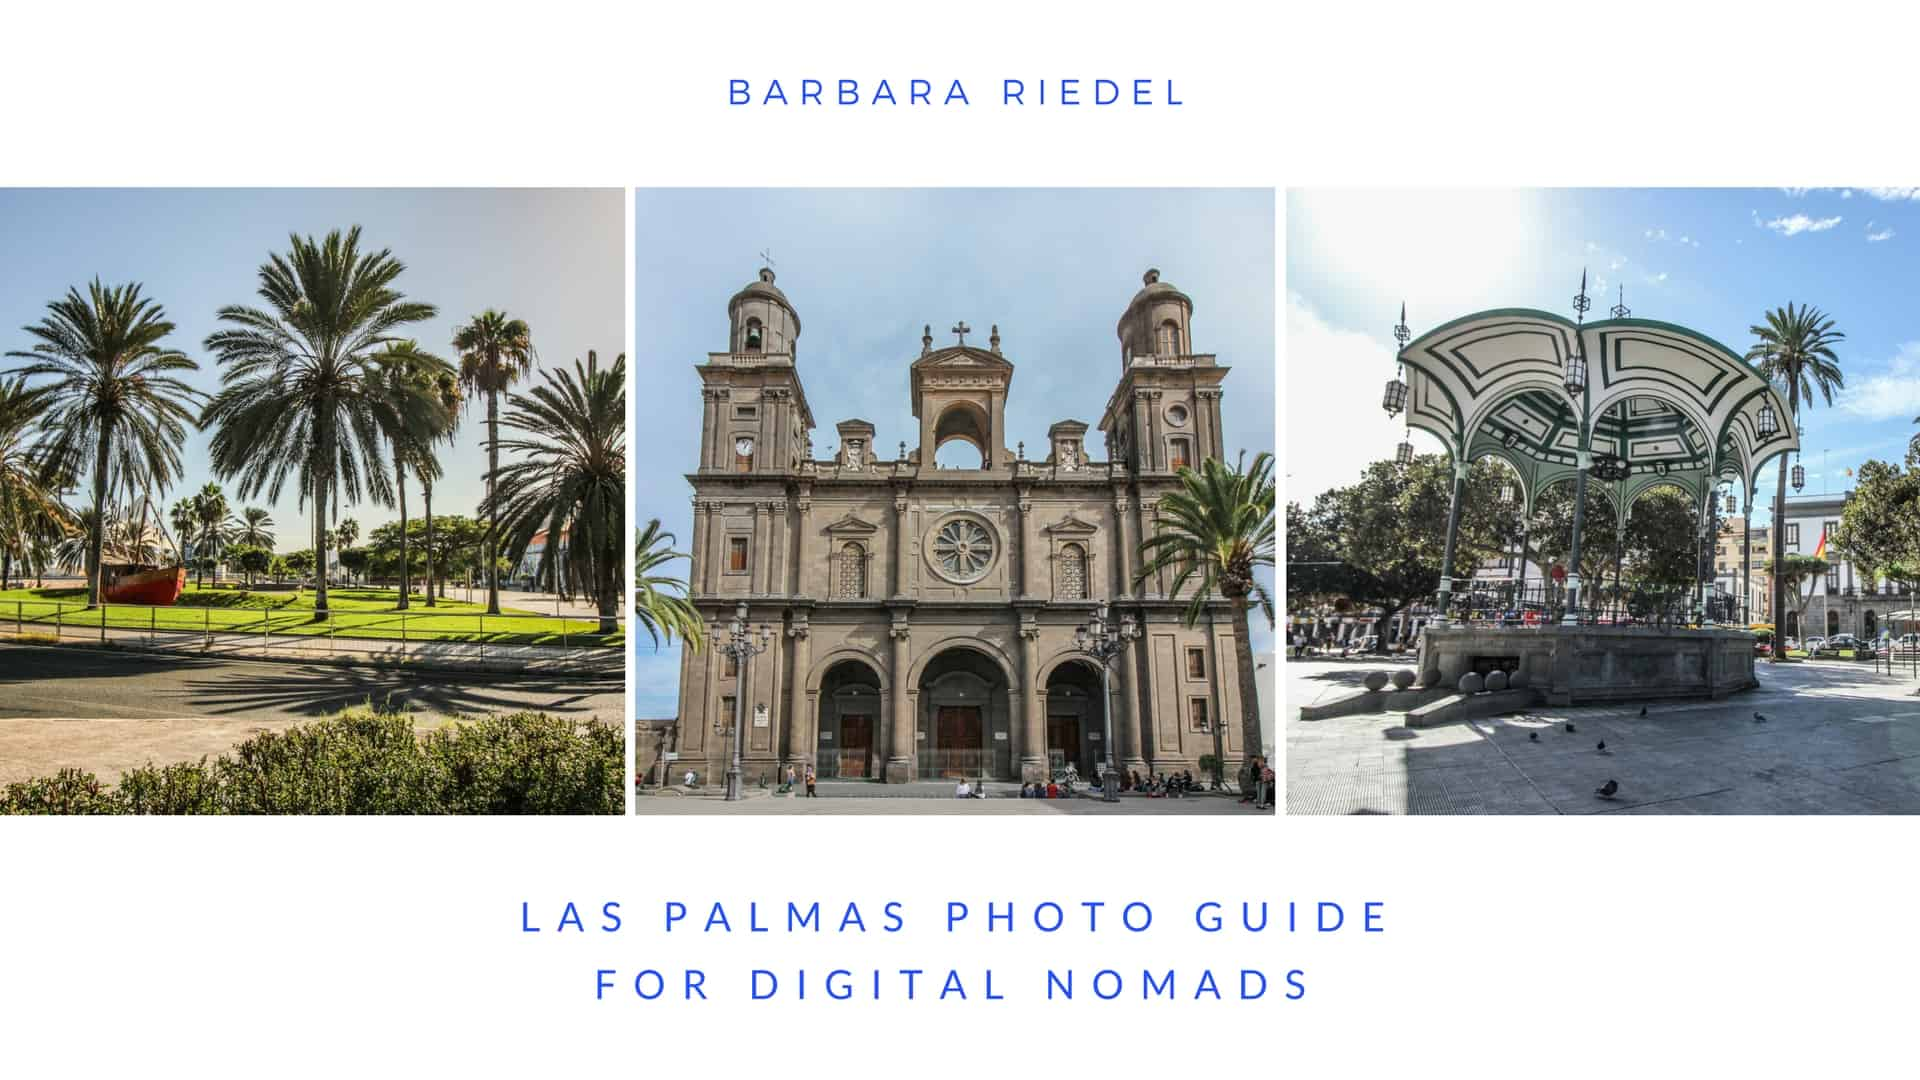 Las Palmas Photo Guide